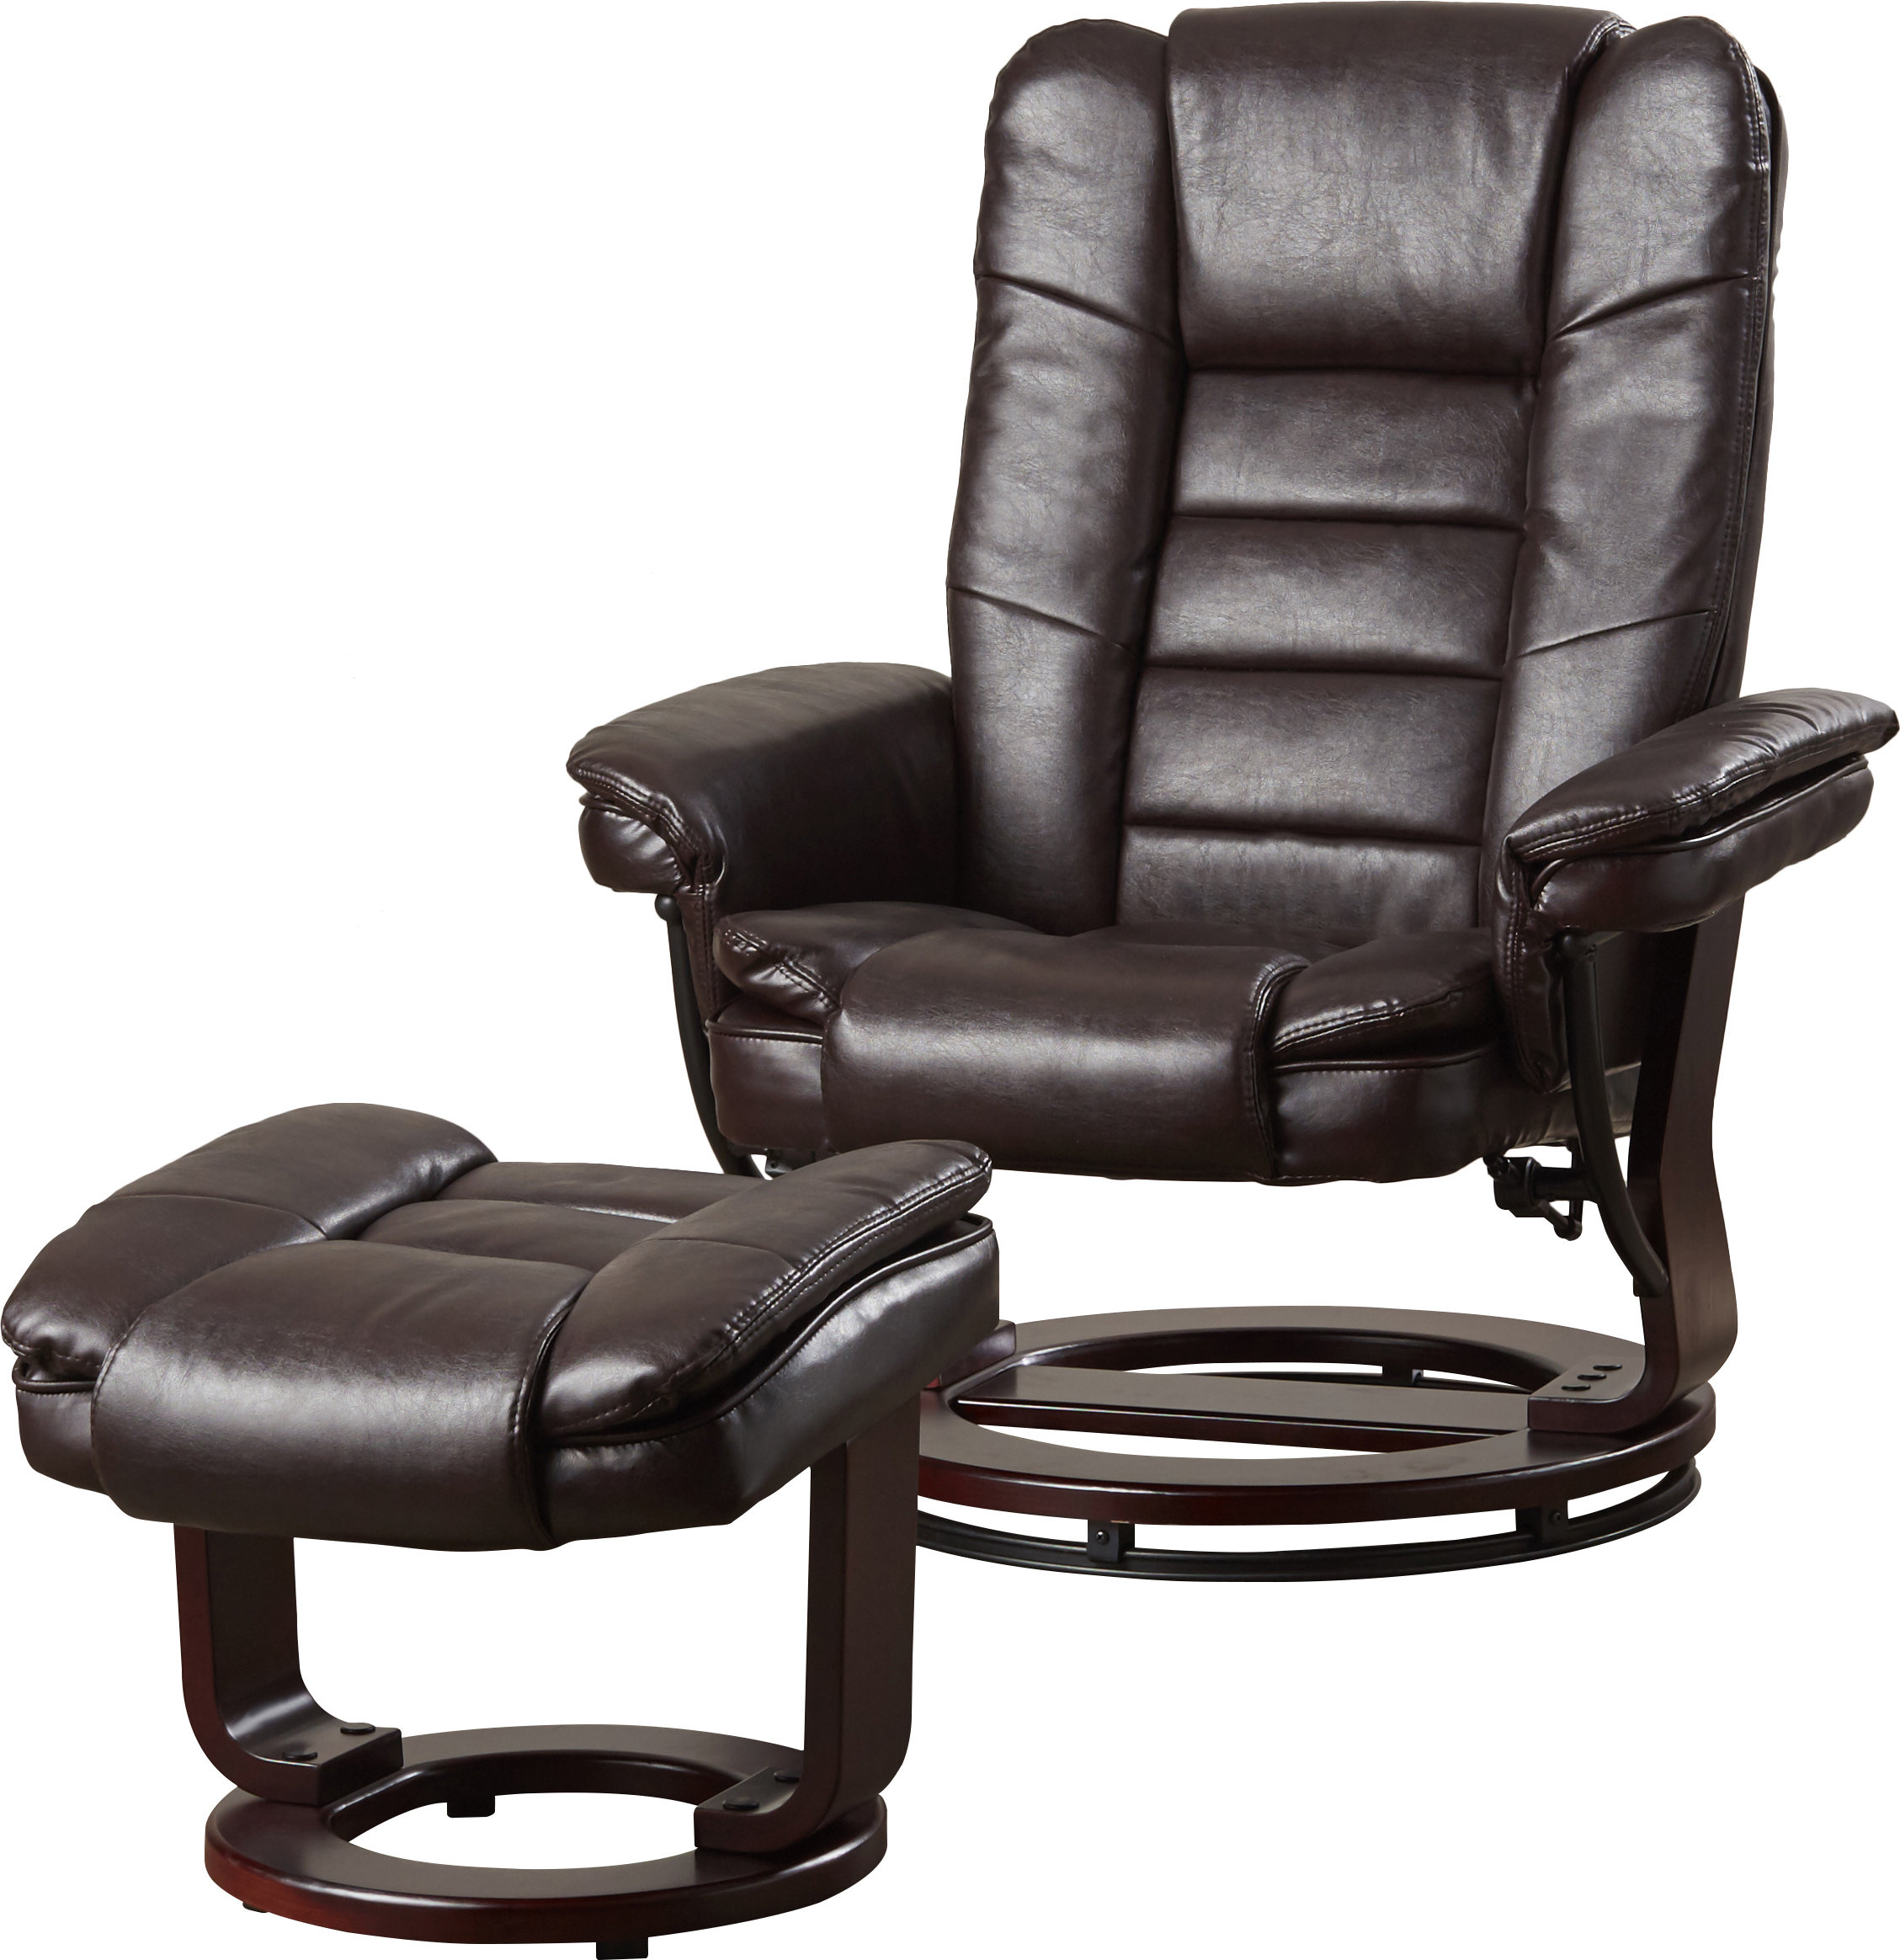 Alcott Hill Hammersdale Manual Swivel Recliner With Ottoman Within Dale Iii Polyurethane Swivel Glider Recliners (Image 2 of 25)